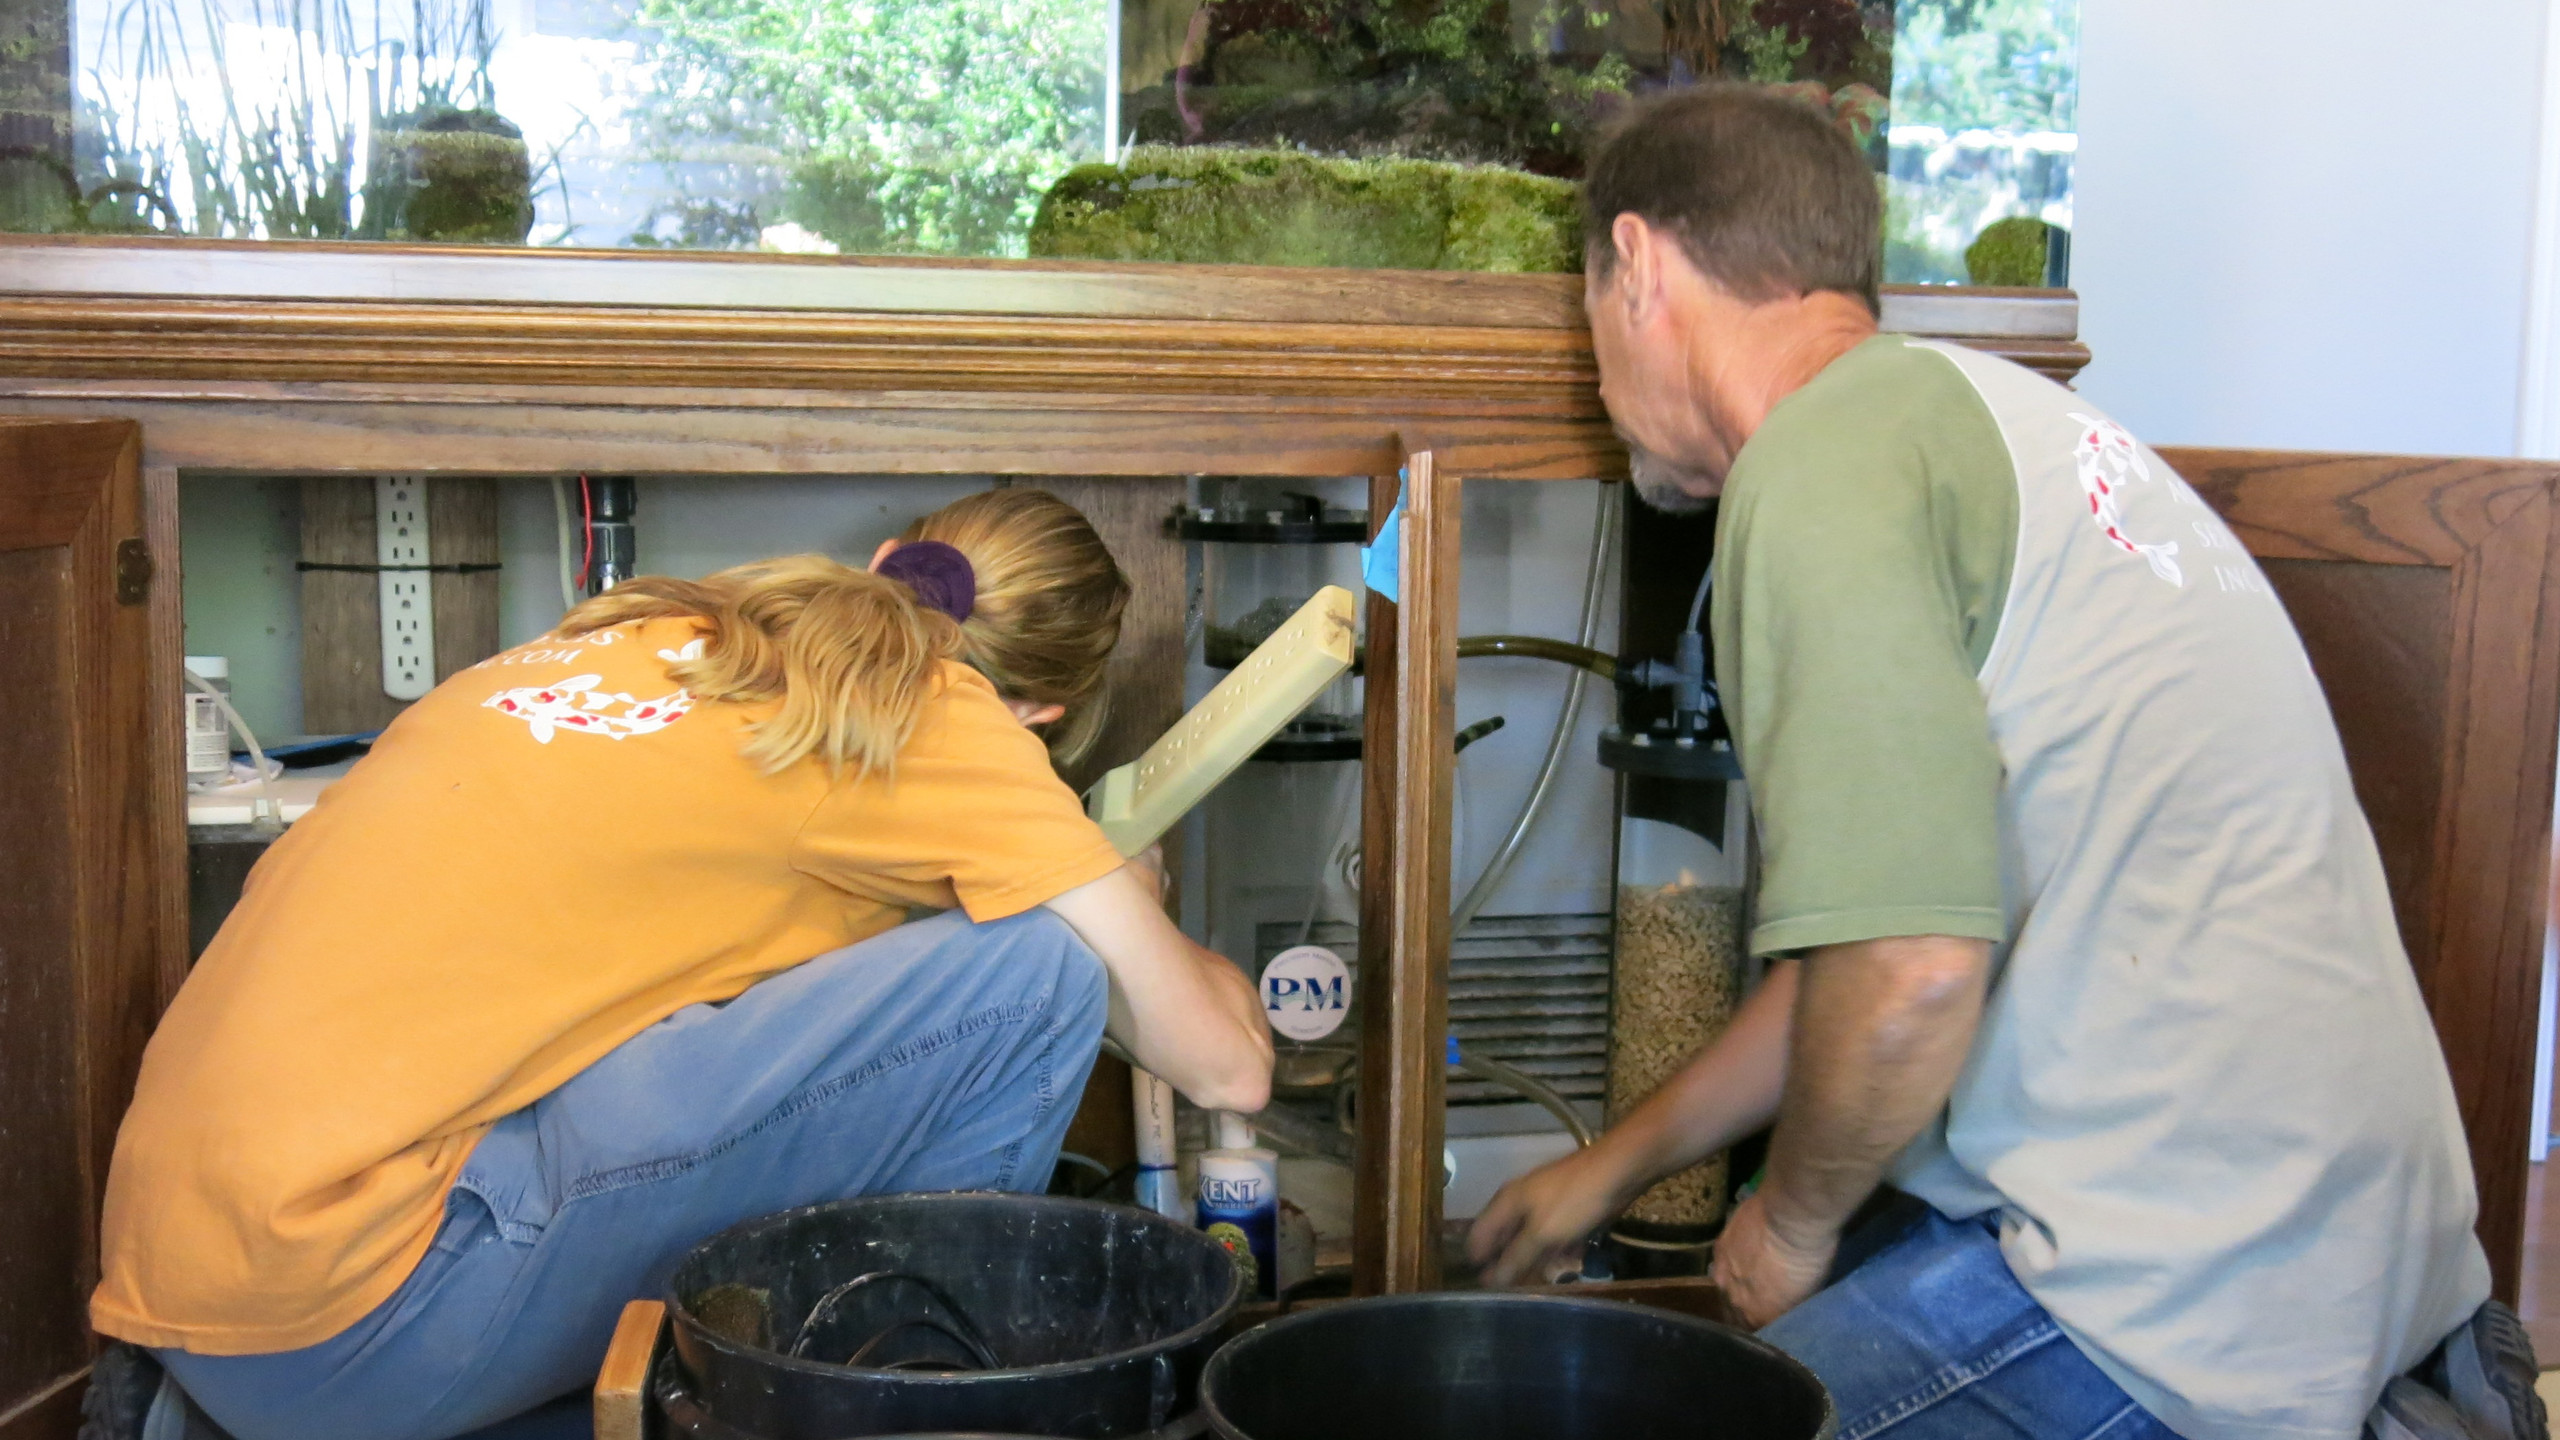 3-Removal of Filtration Plumbing